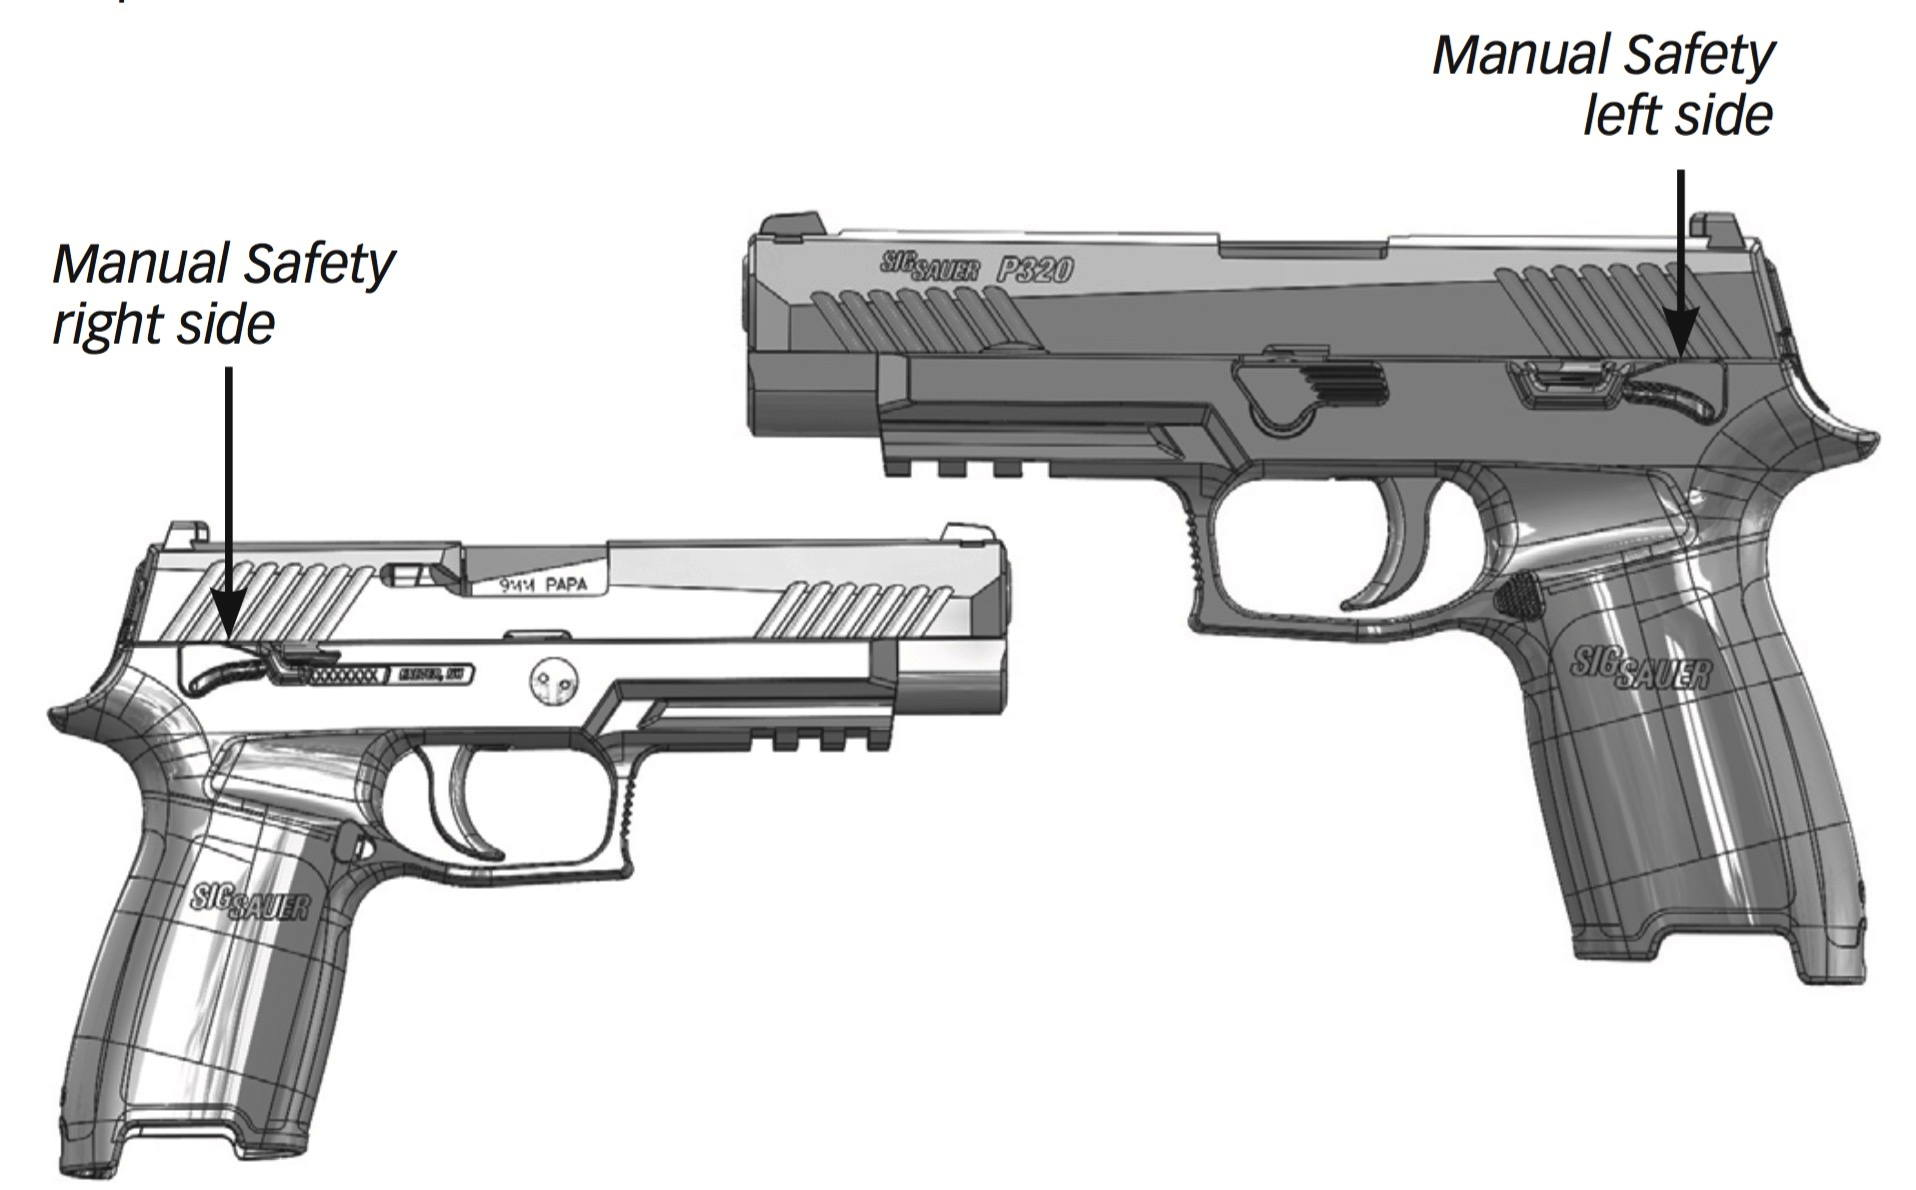 hight resolution of to engage the manual safety rotate the safety lever upward with the thumb of the firing hand the manual safety is ambidextrous